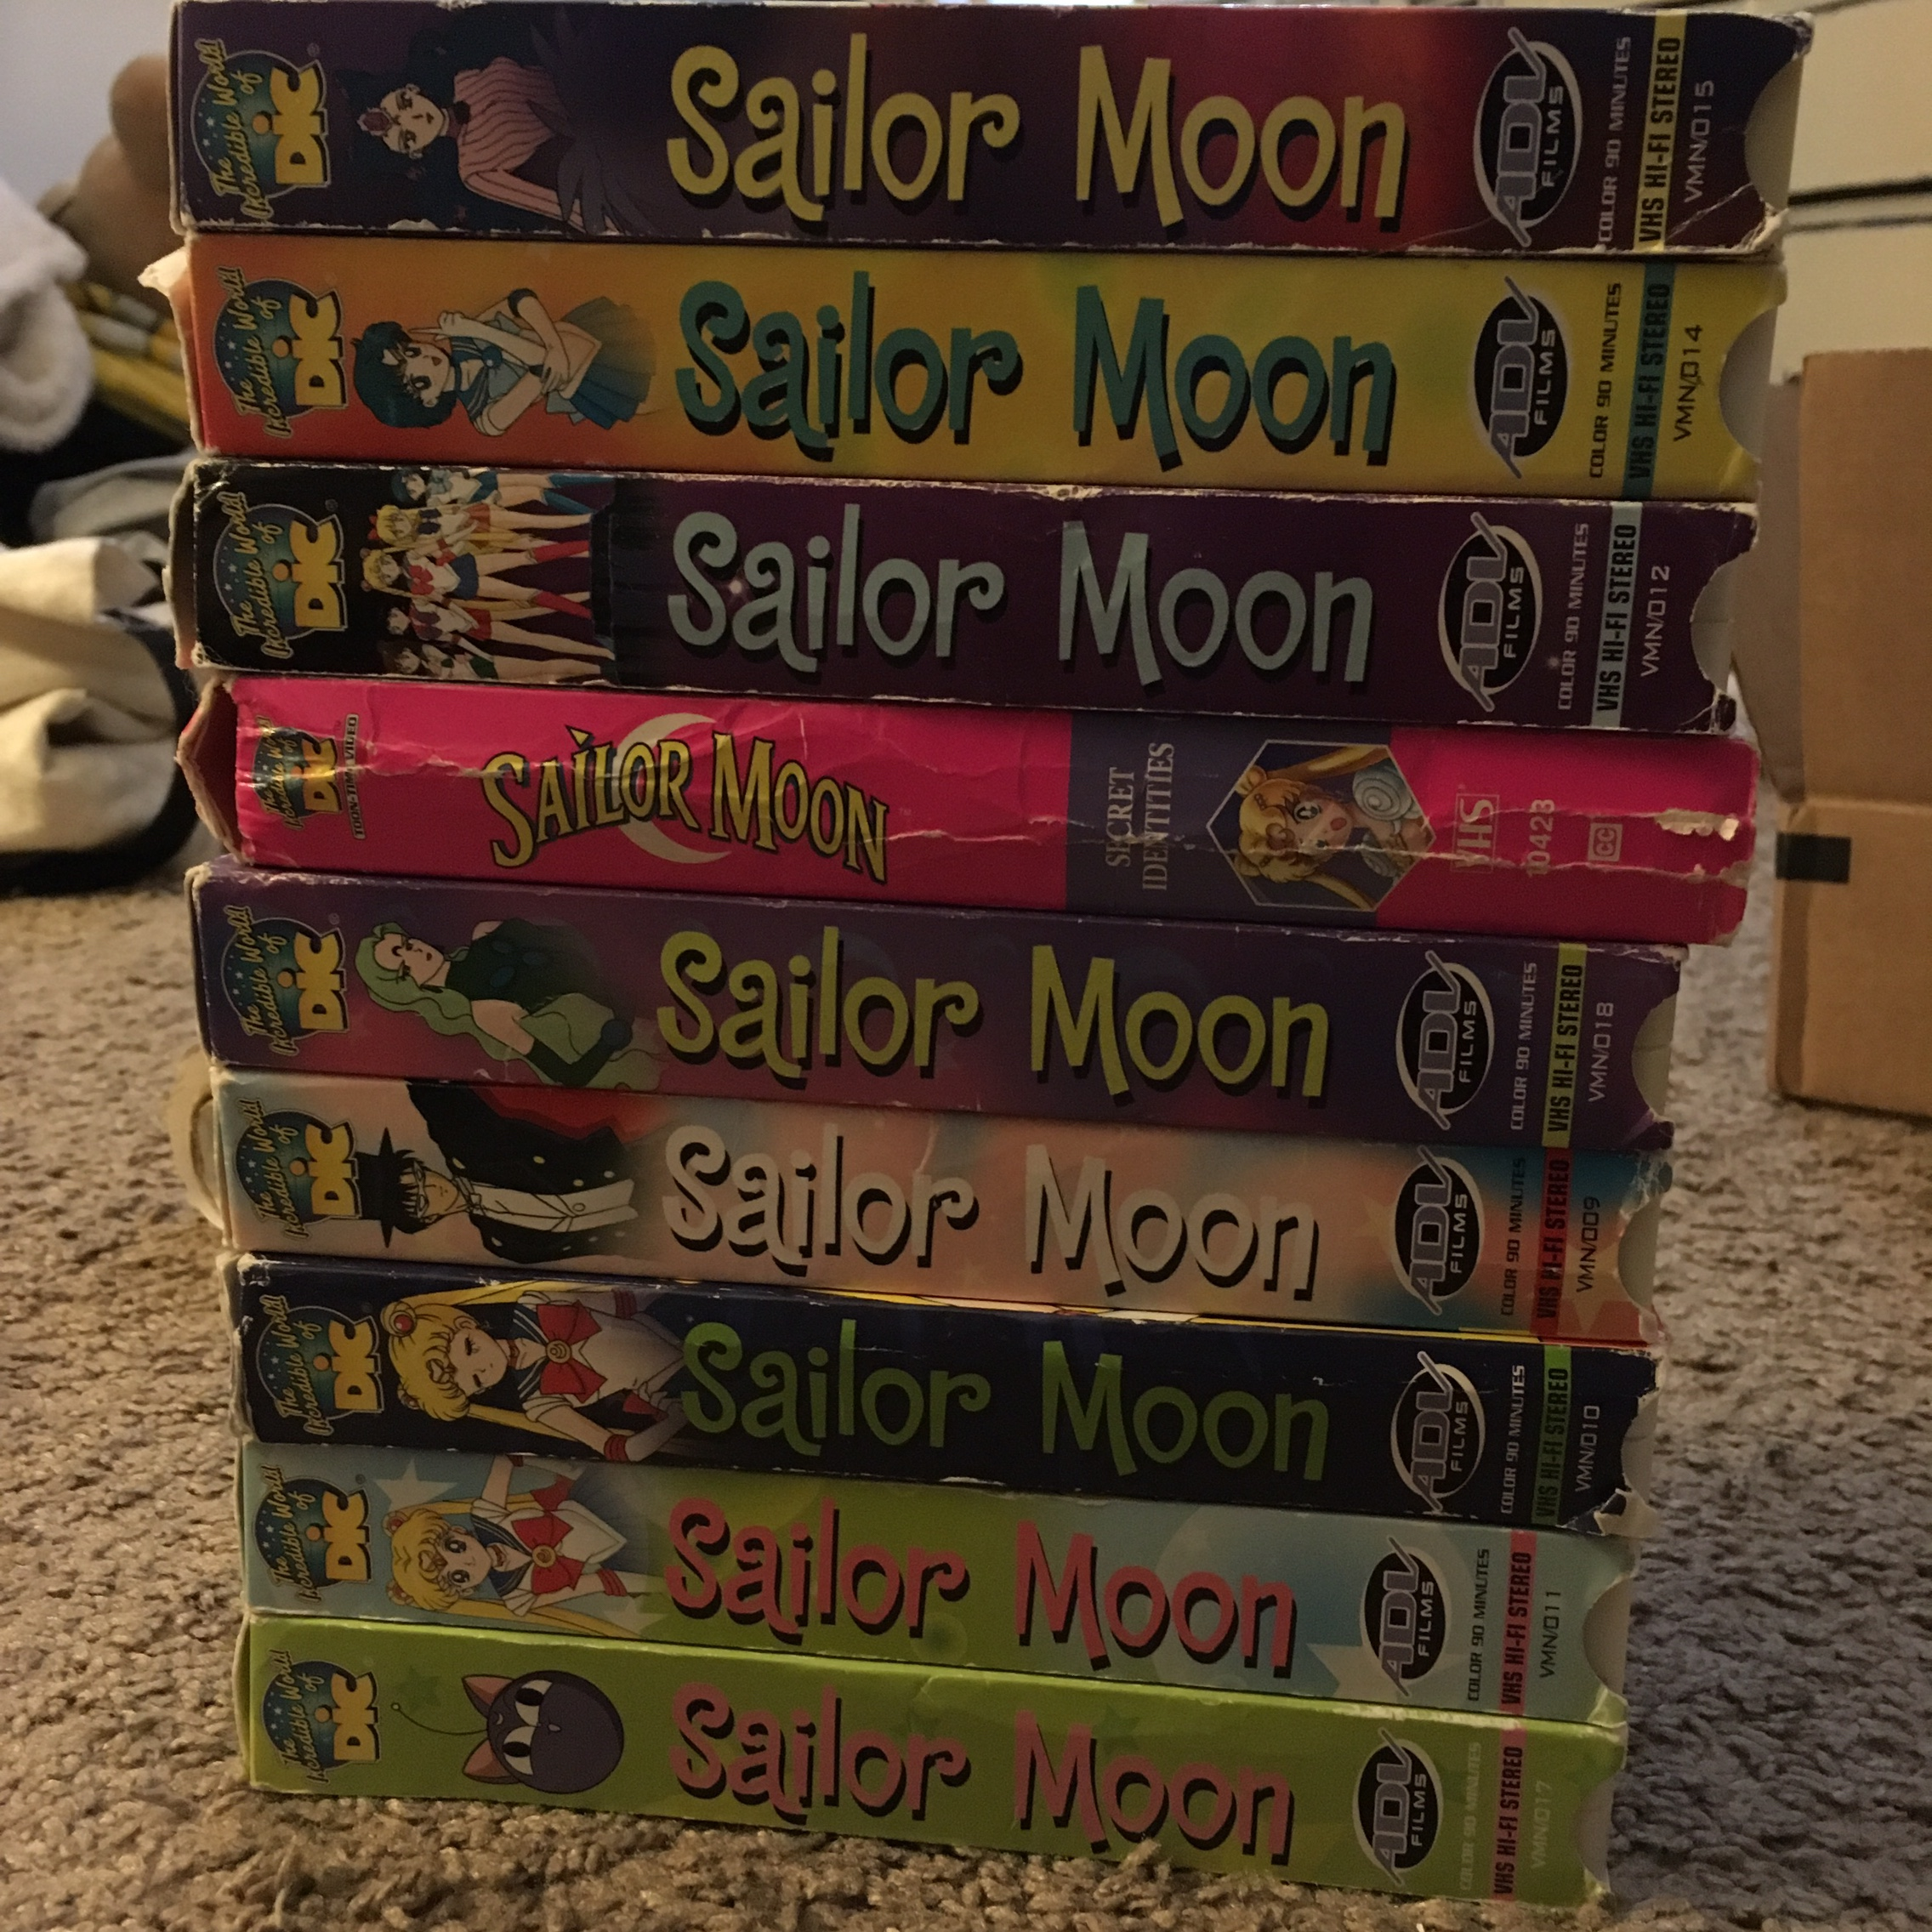 Sell Vhs Tapes >> 9 Sailor Moon Vhs Tapes Some Boxes Are In Better Depop